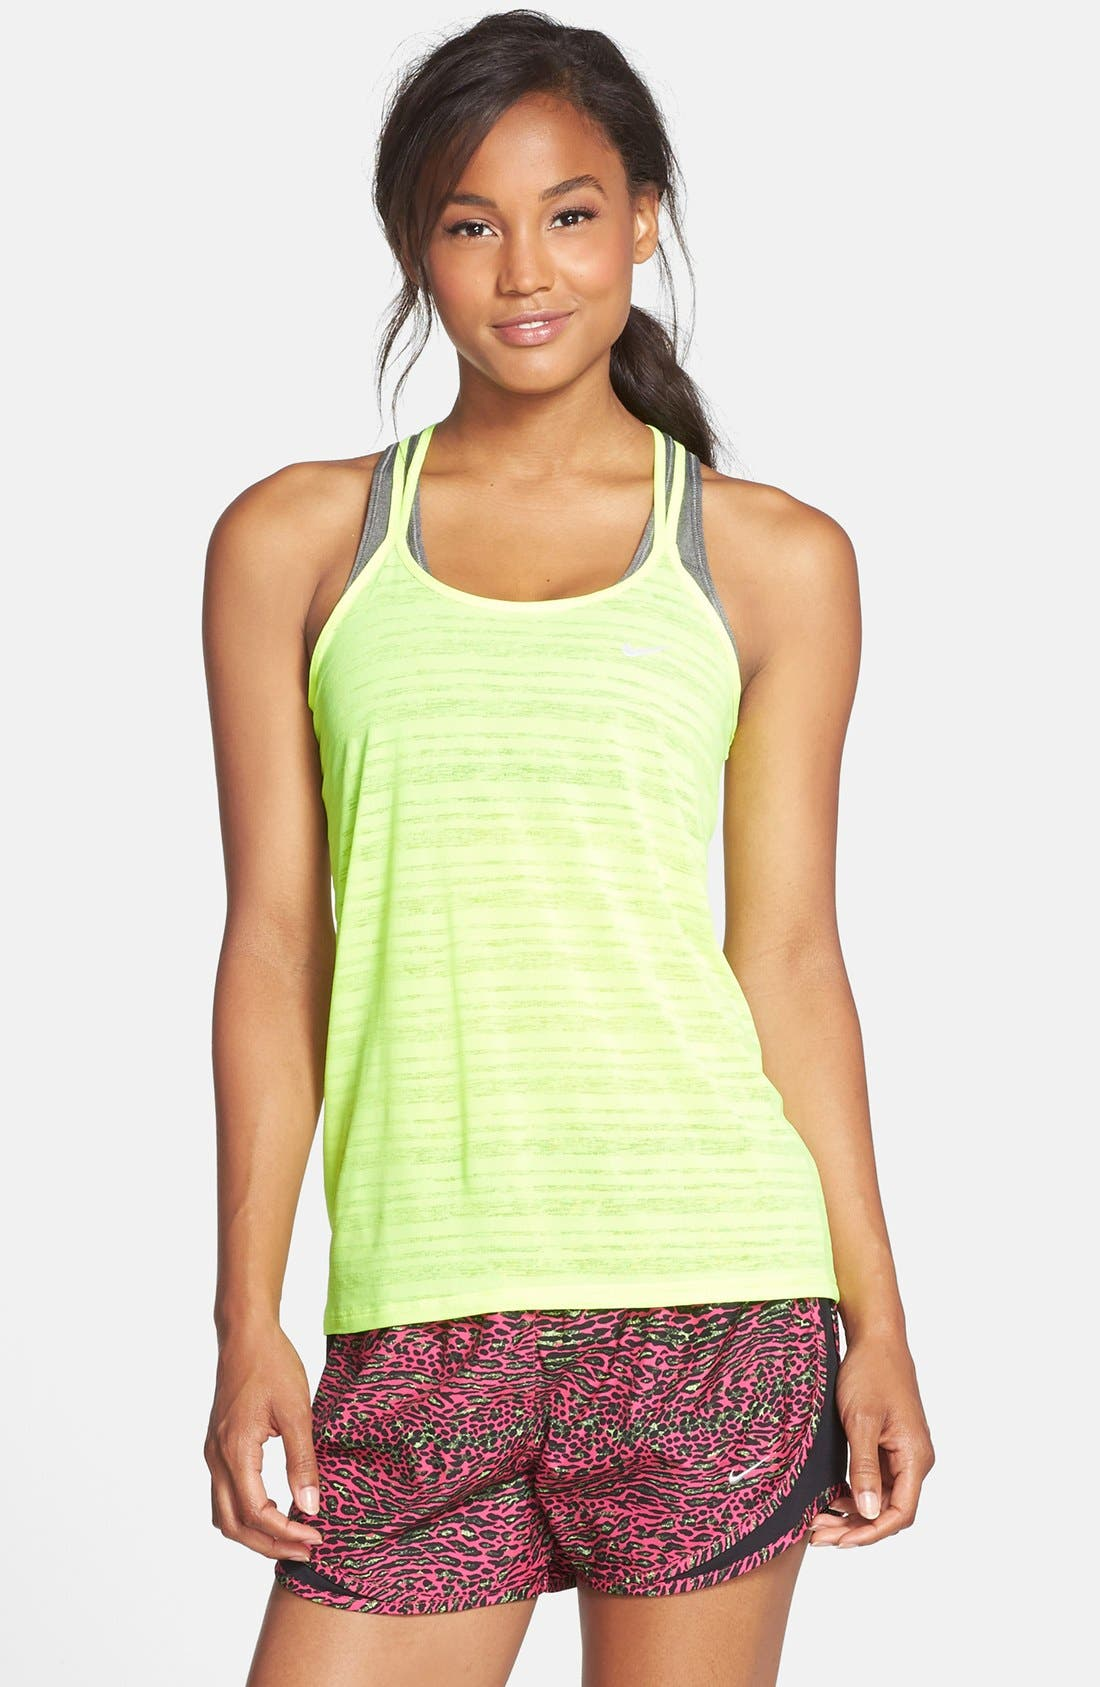 Main Image - Nike 'Cool Breeze' Dri-FIT Strappy Running Tank